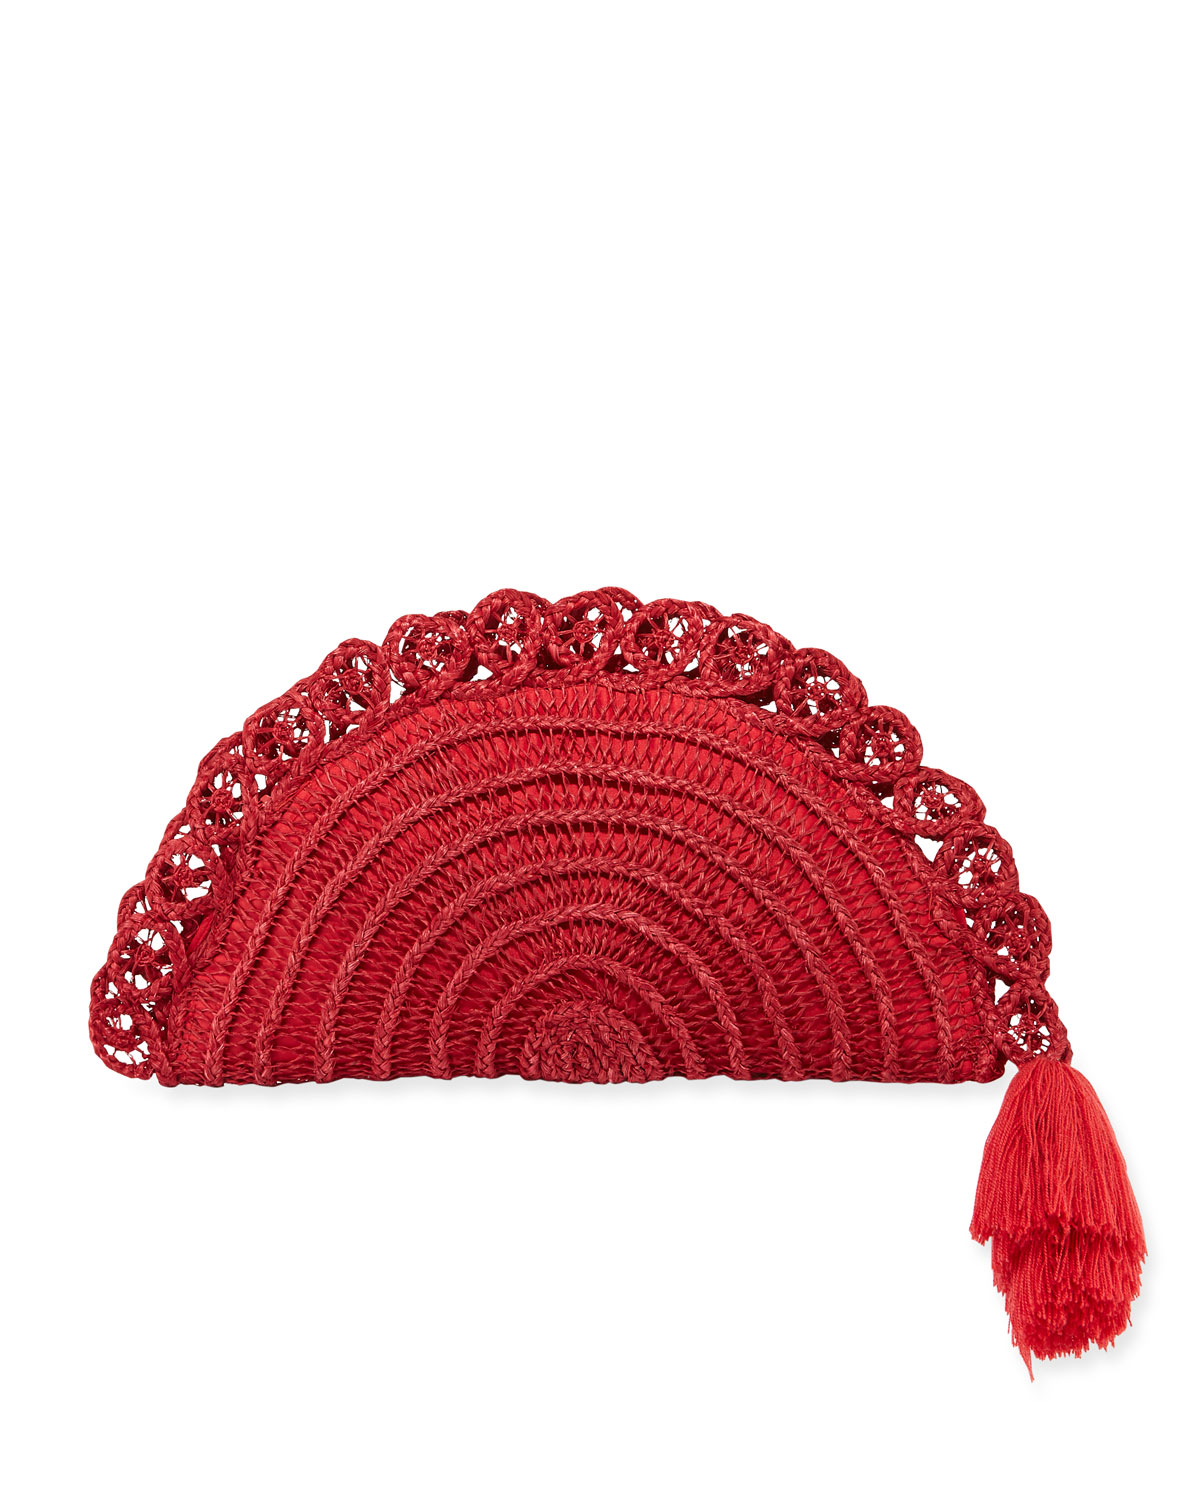 NANNACAY - COTIO Lua Straw Clutch Bag With Tassel in Red